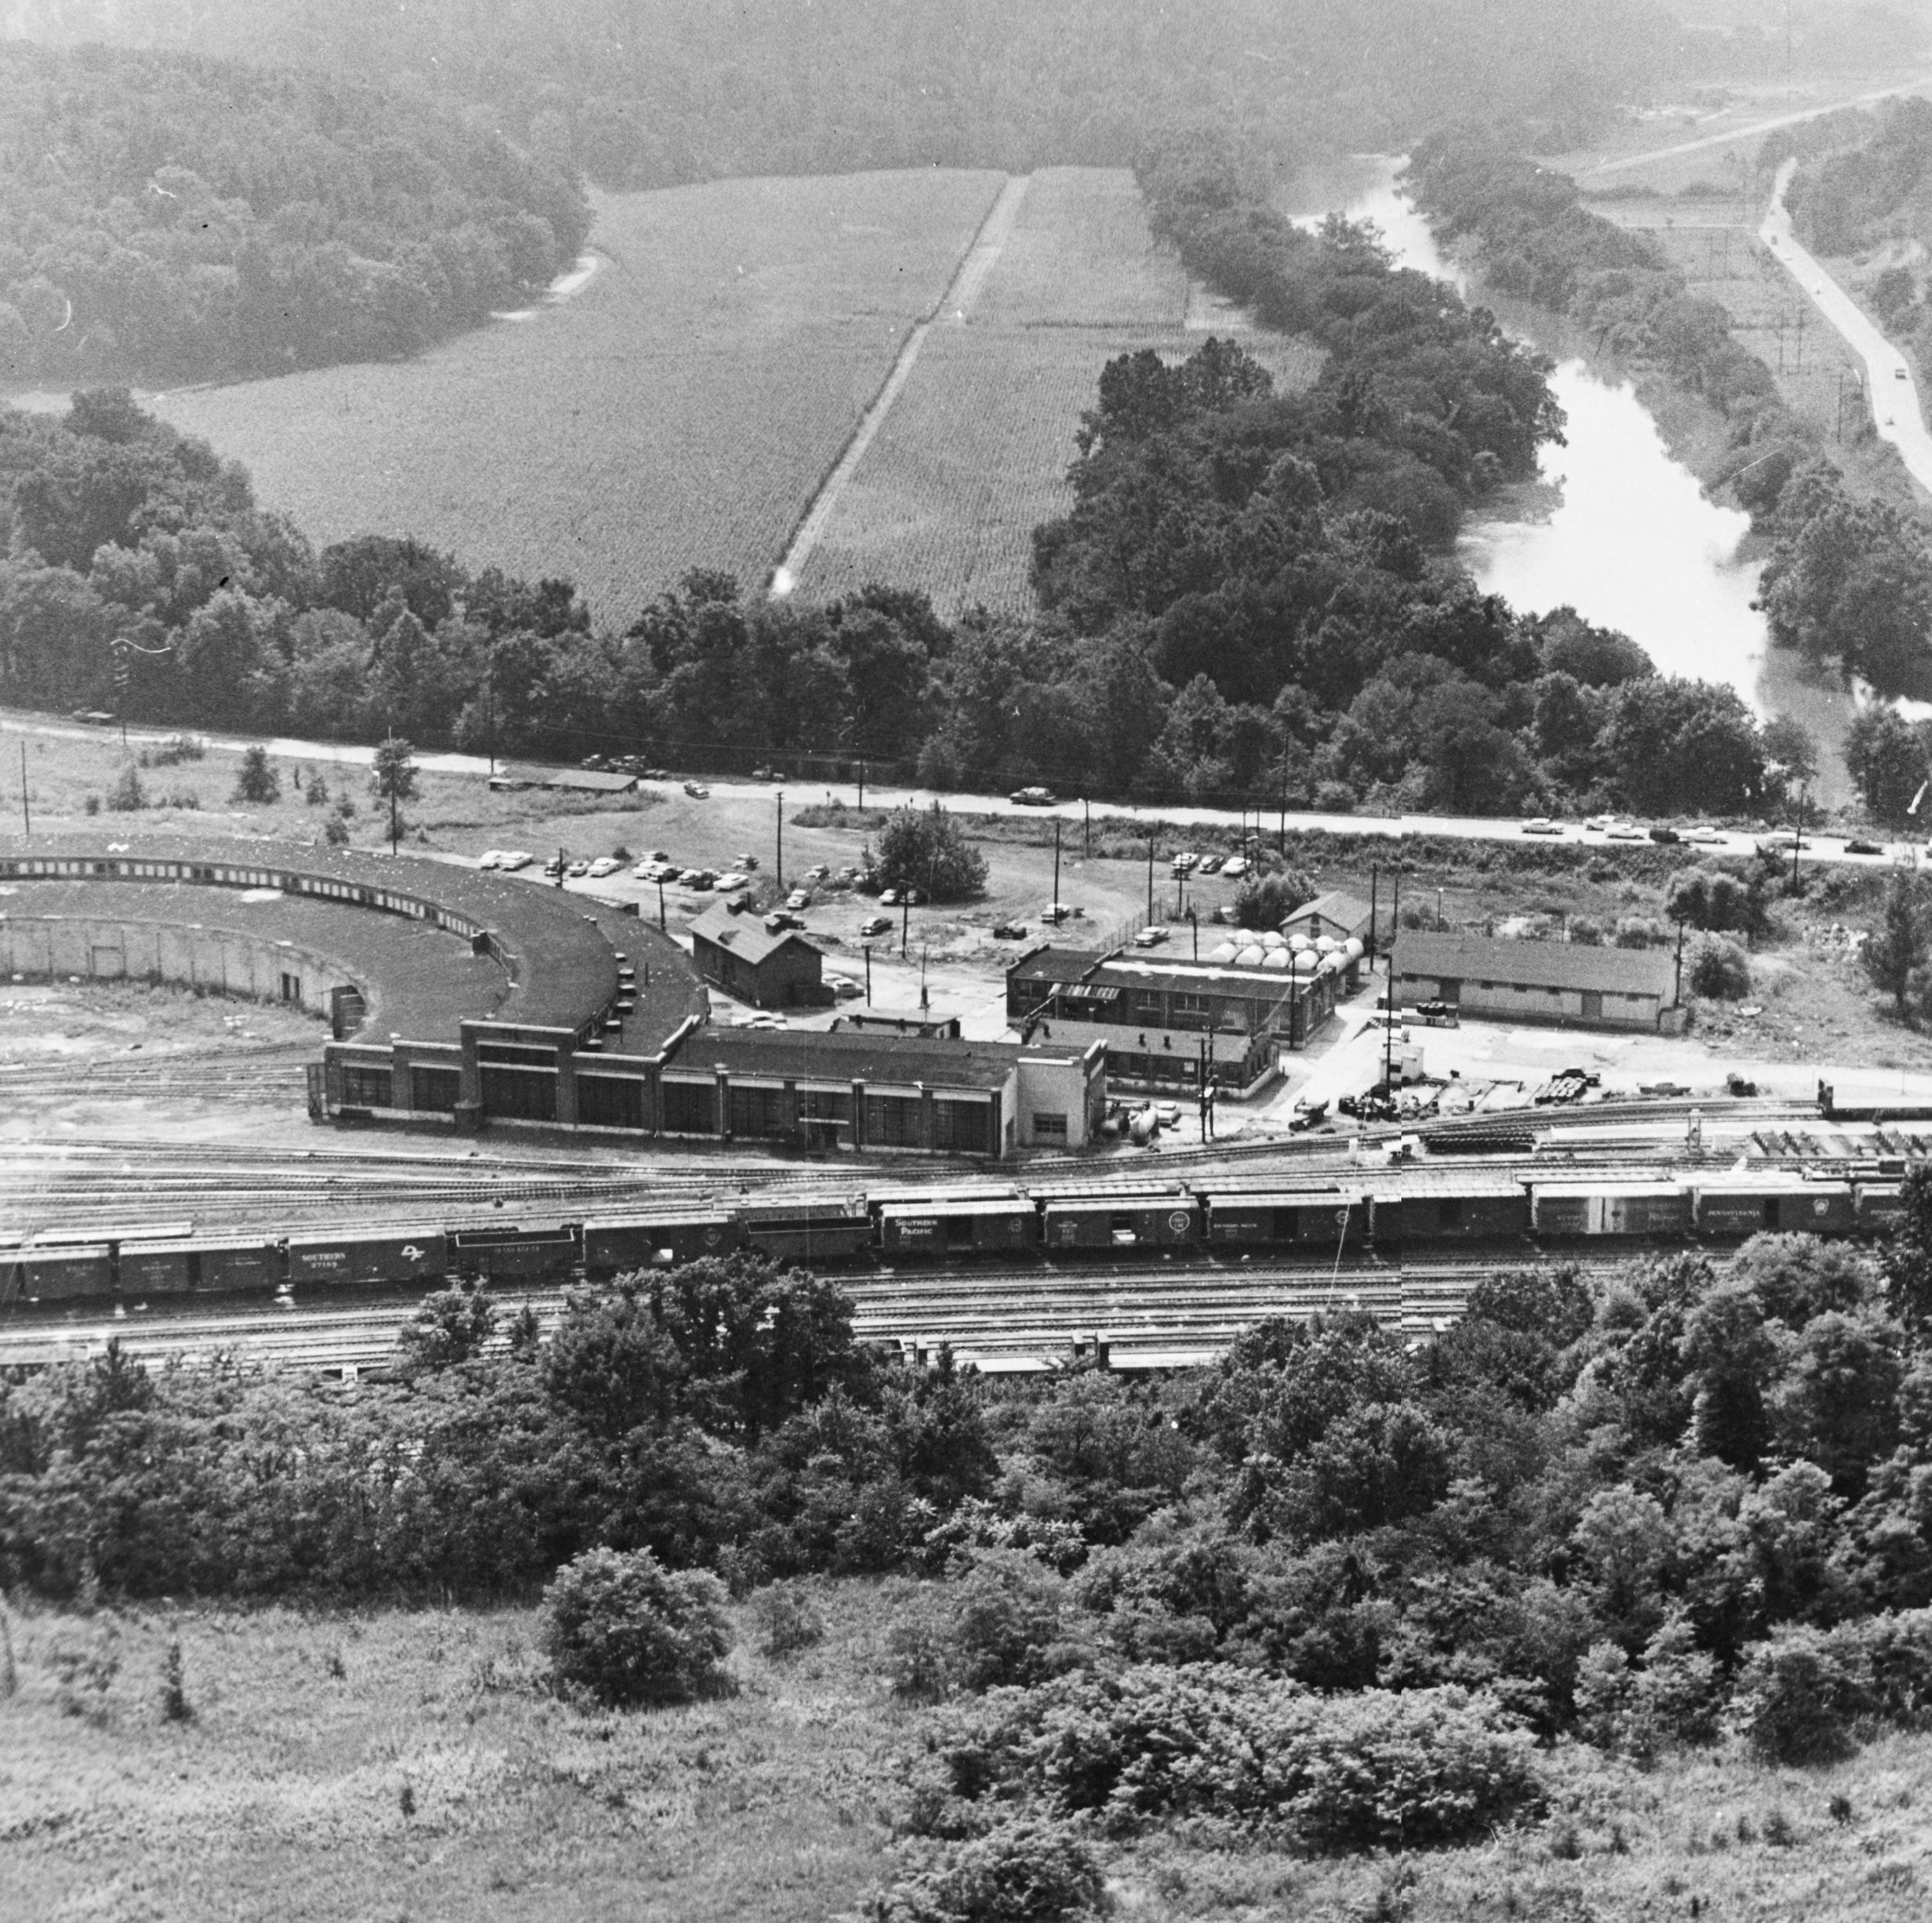 Visiting Our Past: West Asheville's railroaders came 'round the mountain